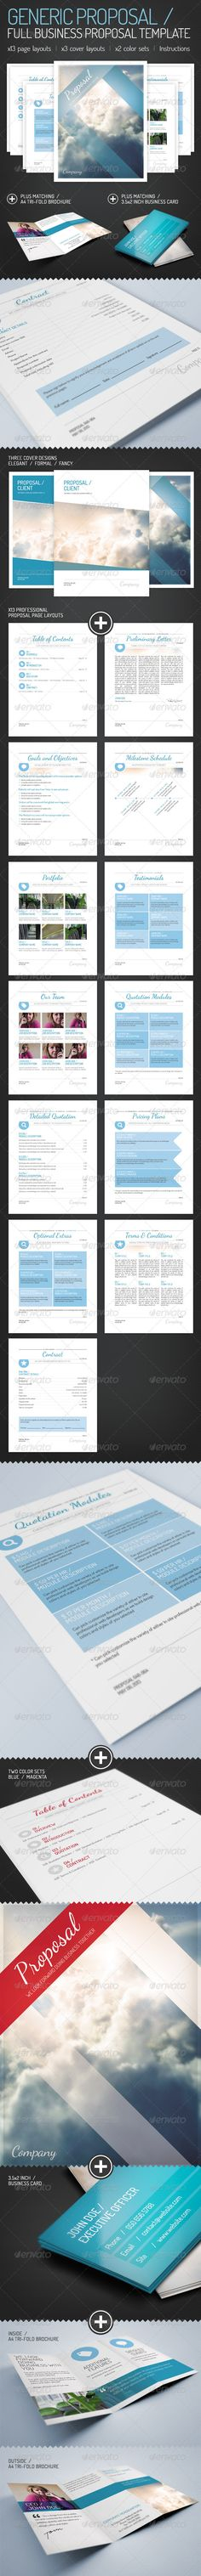 Generic Proposal - Full Business Proposal Template - GraphicRiver Item for Sale